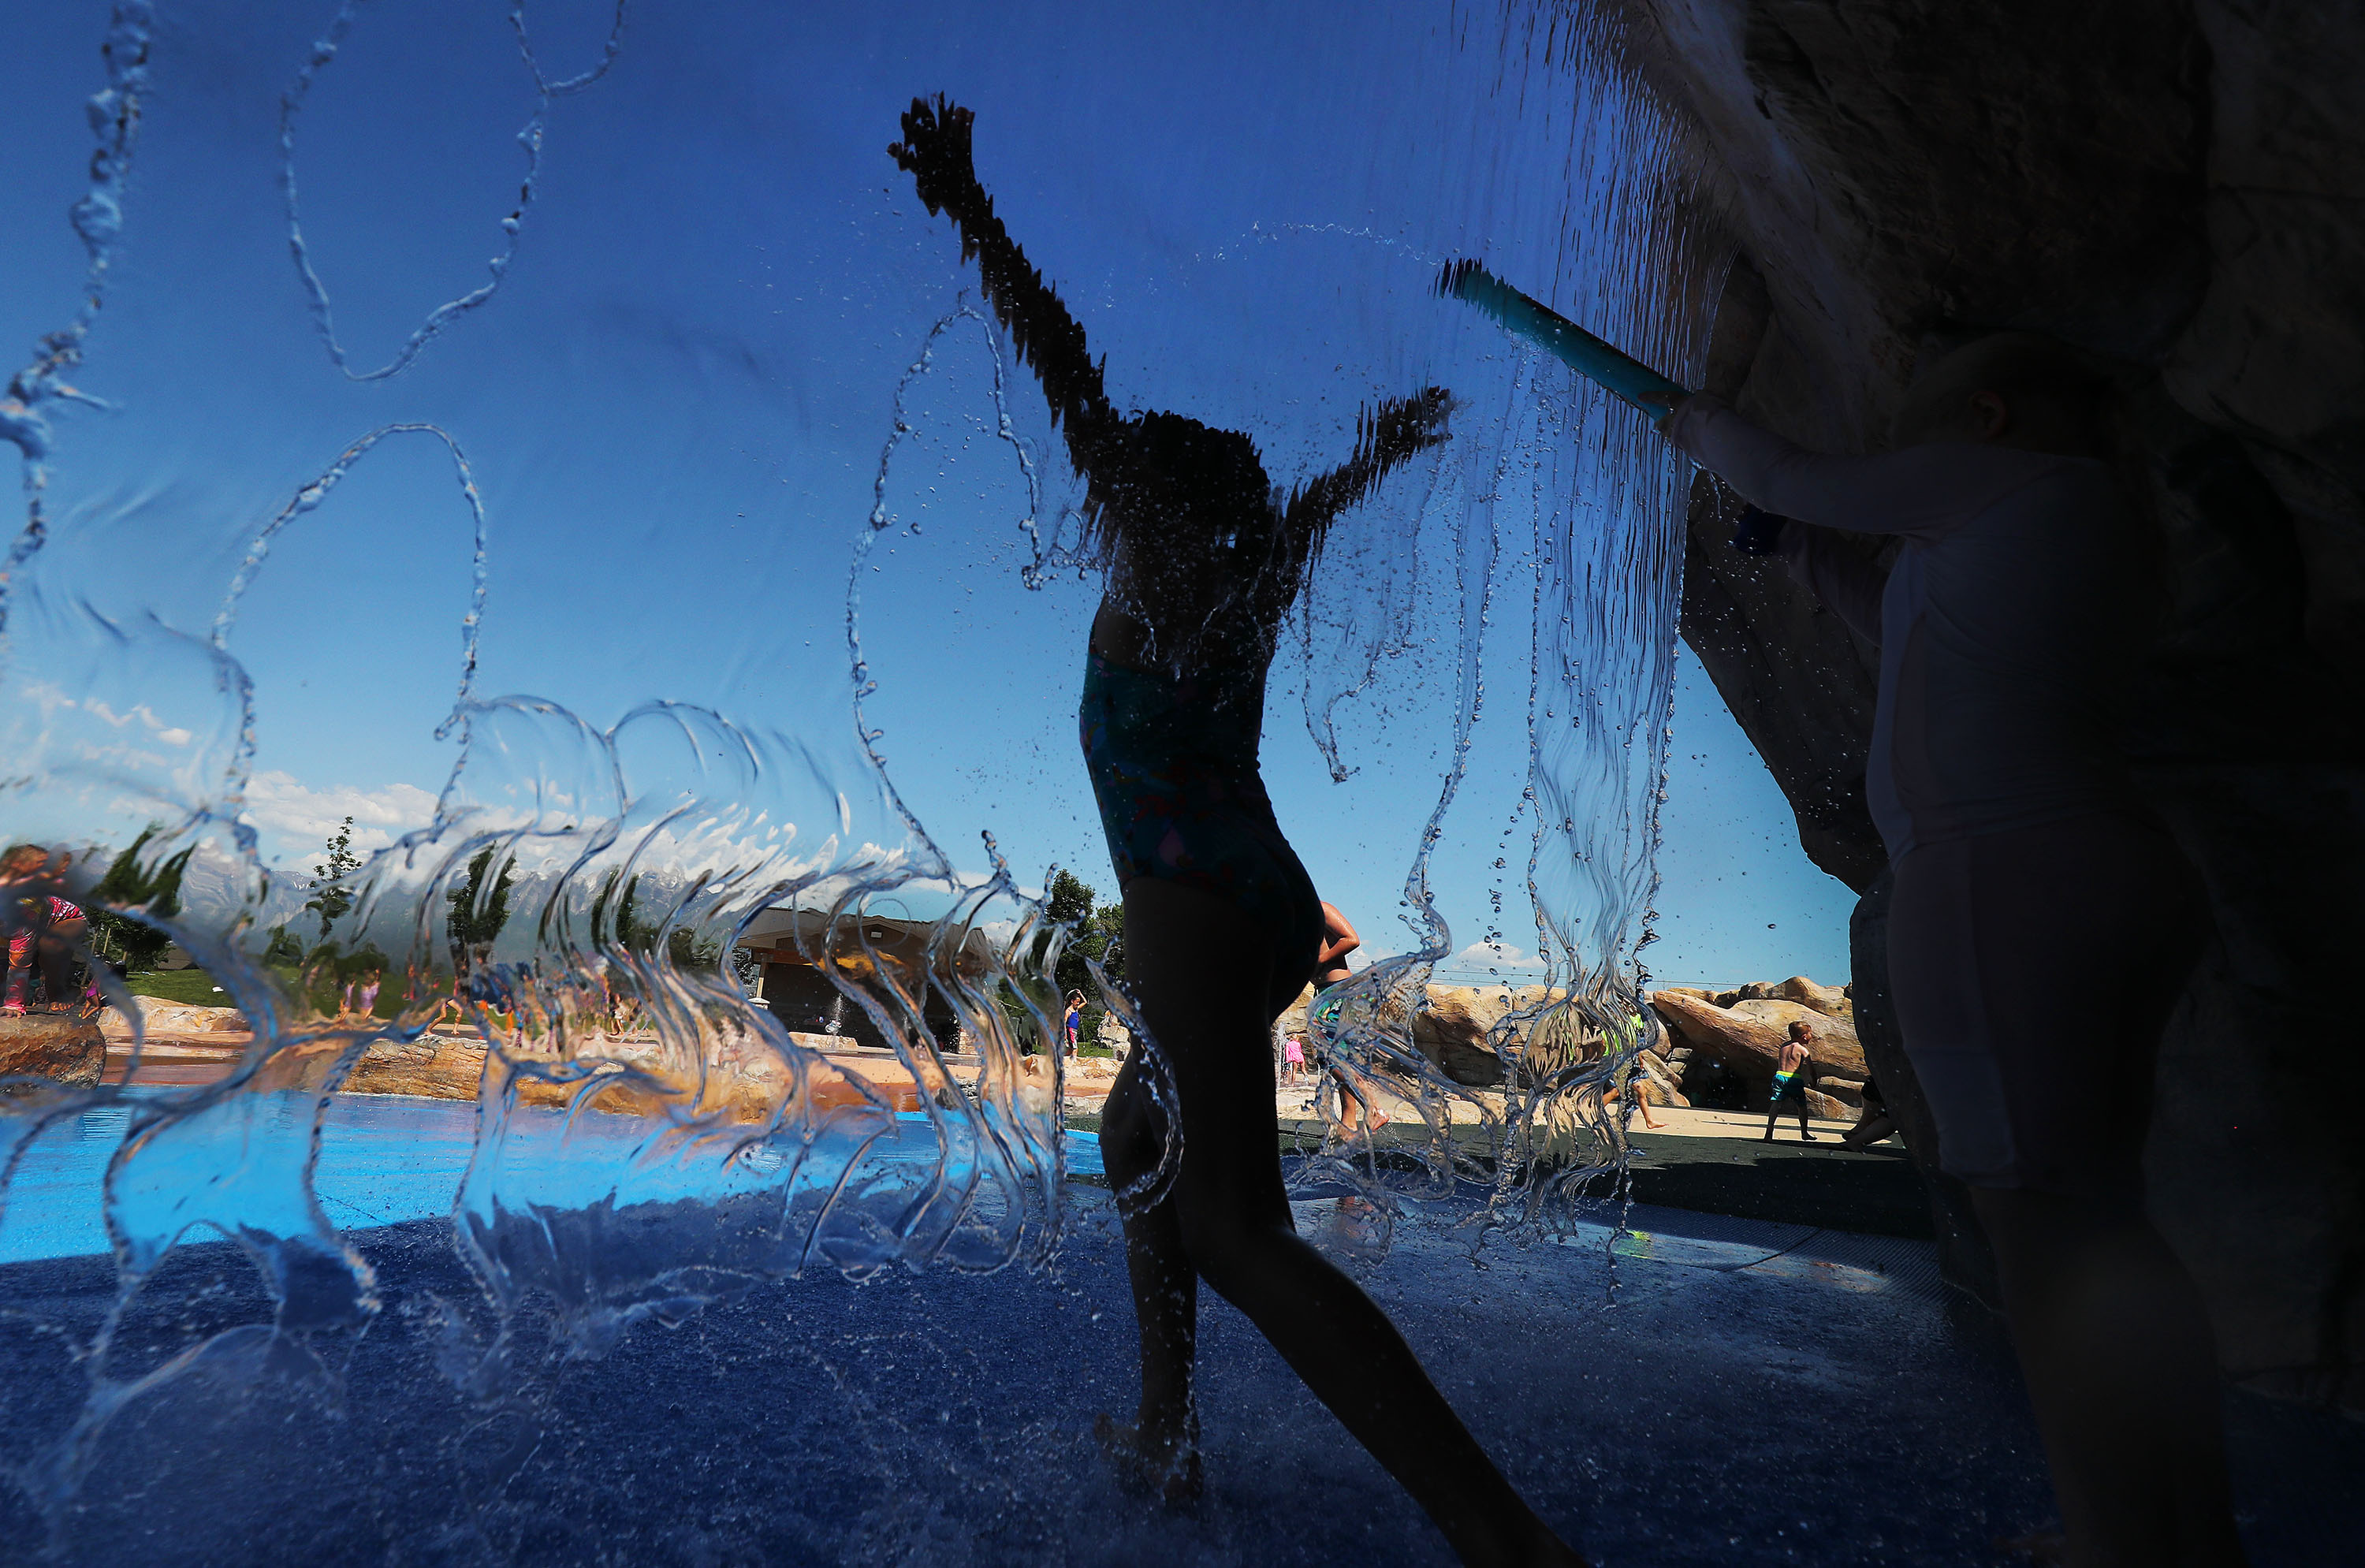 Children cool off in the water at Wardle Fields Regional Park splash pad in Bluffdale on Thursday, June 3, 2021.